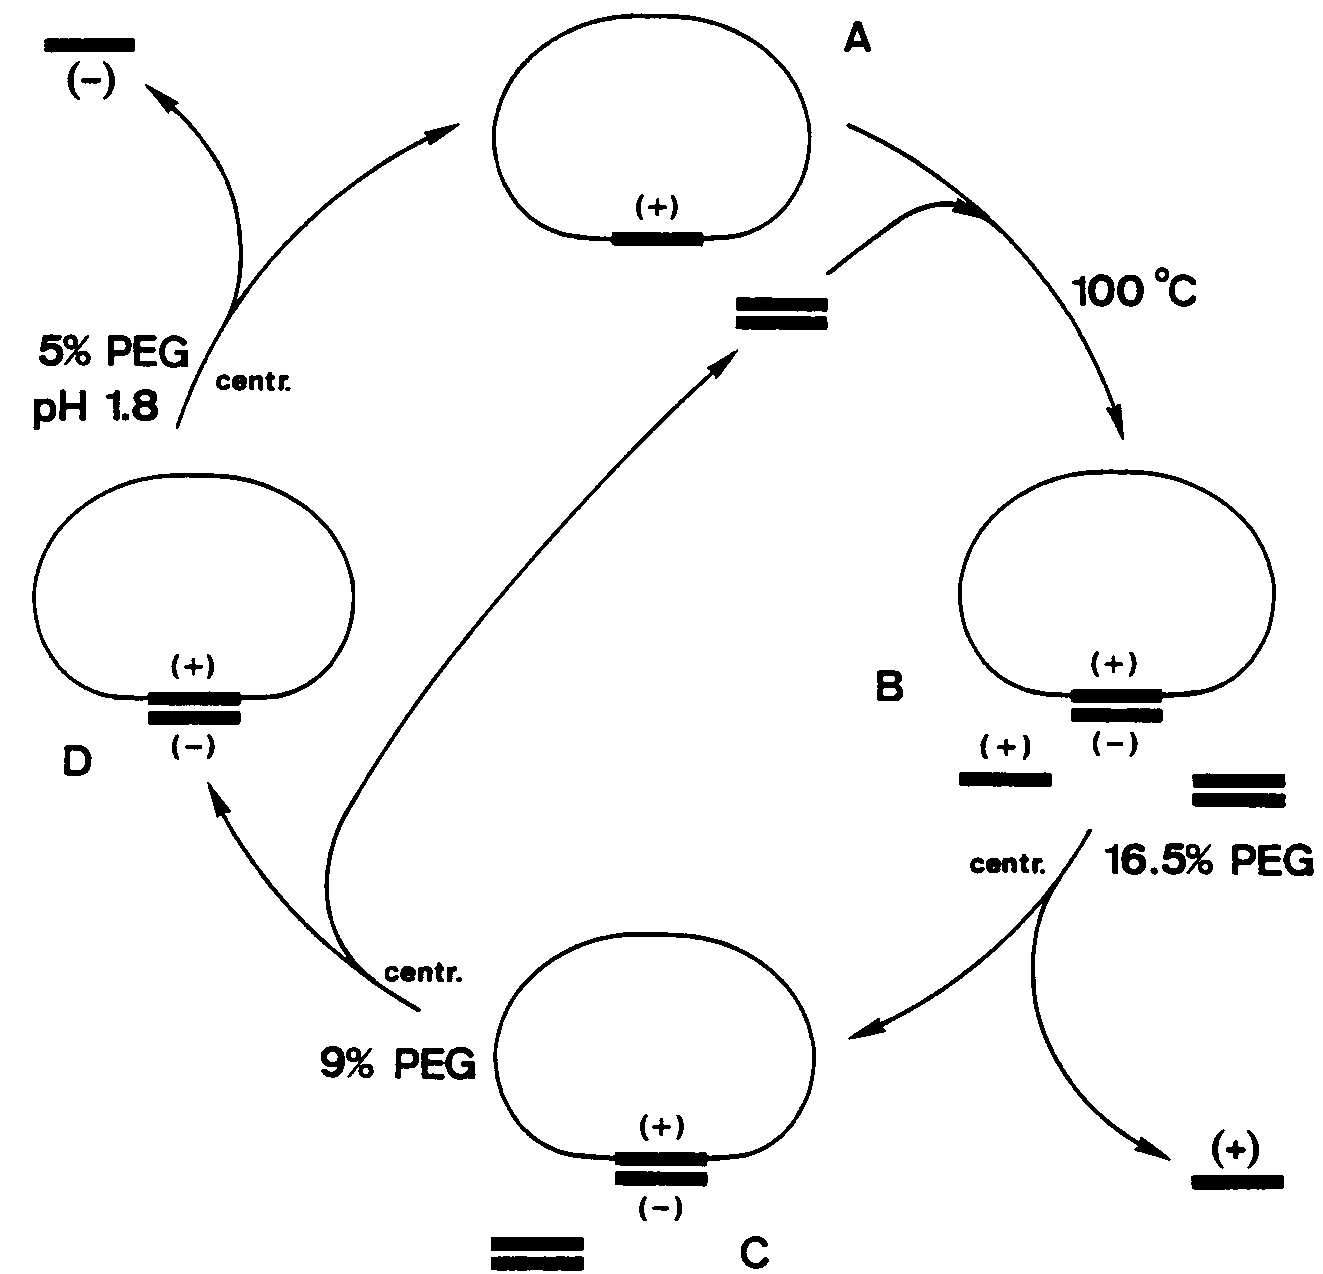 Diagrammatic representation of the purification of the two strands of a DNA molecule.